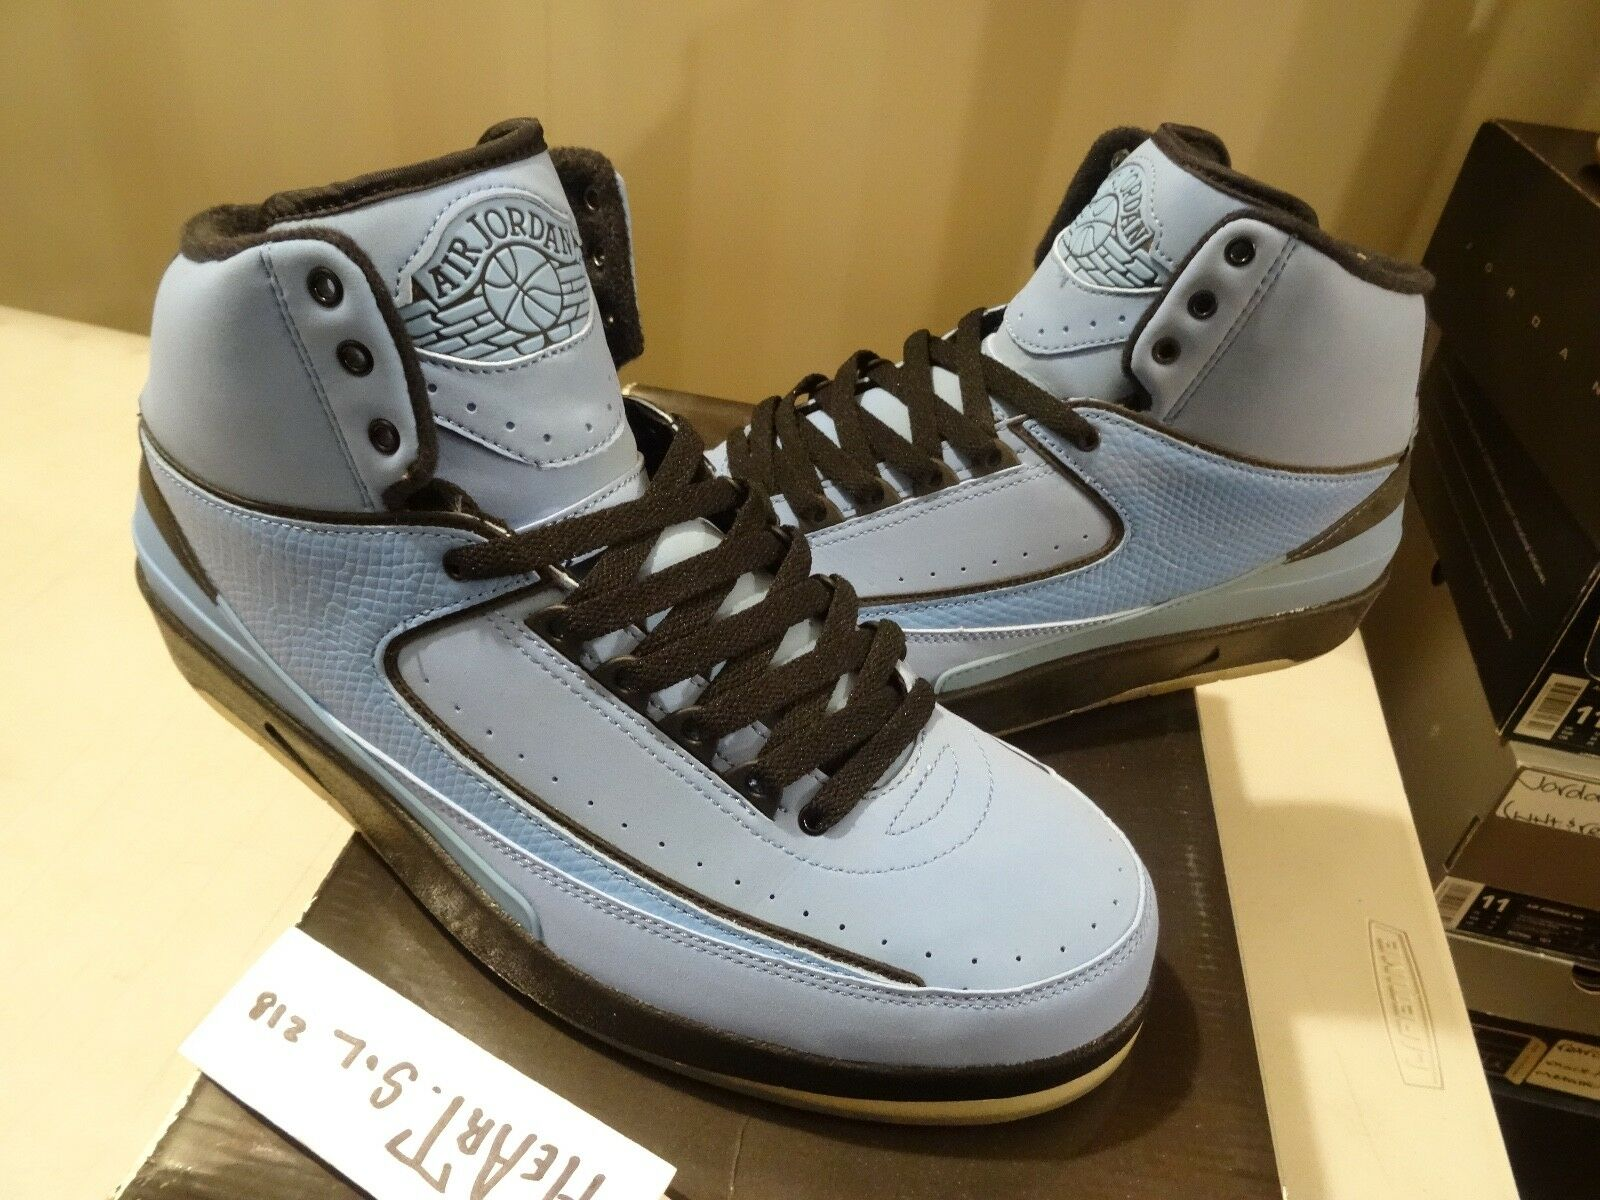 2010 Nike Air Jordan 2 II Retro QF University bluee Candy Pack 395709-401 SZ 11